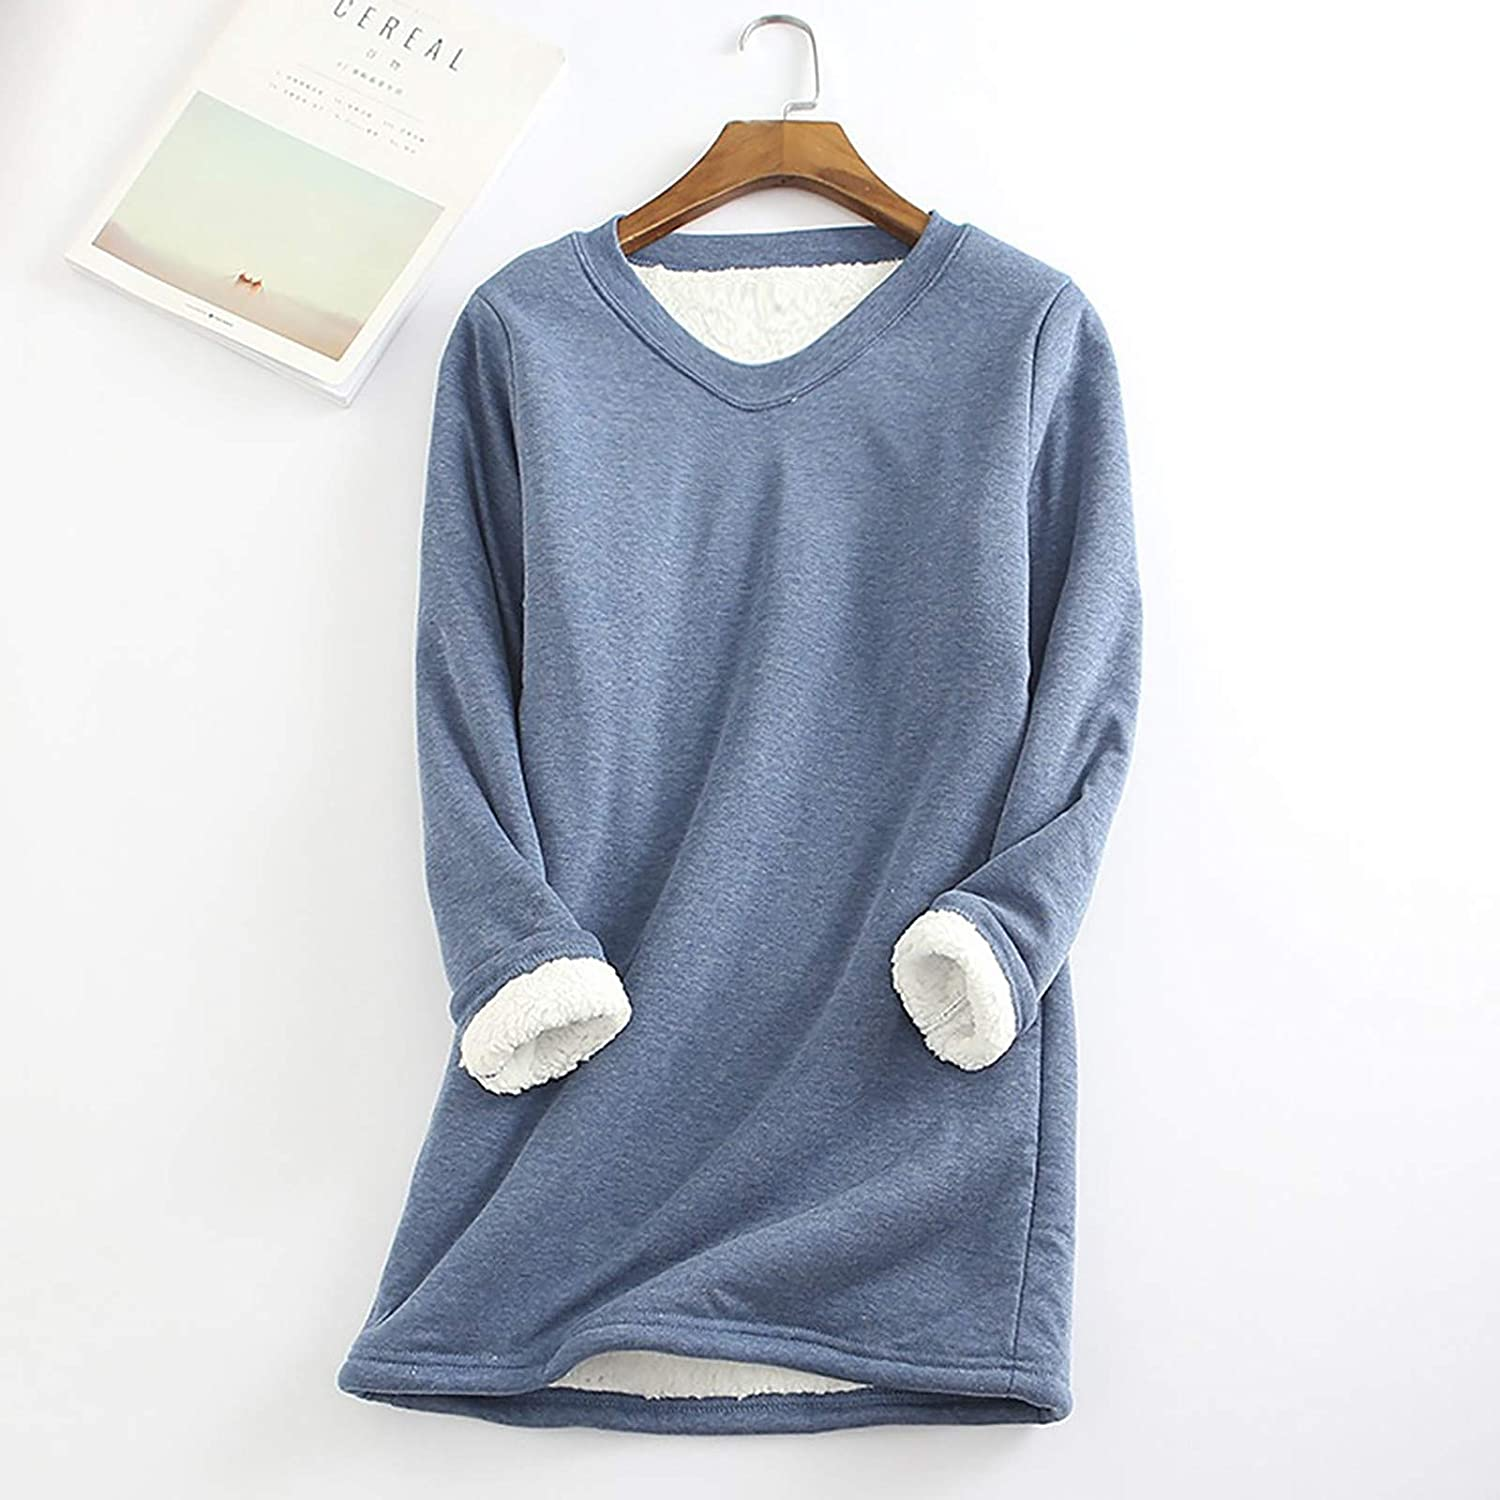 Christmas Solid Warm Sherpa Fleece Lined Crewneck Undershirt Tees Tops Blouse Loungewear Thatso Women Thermal Underwear